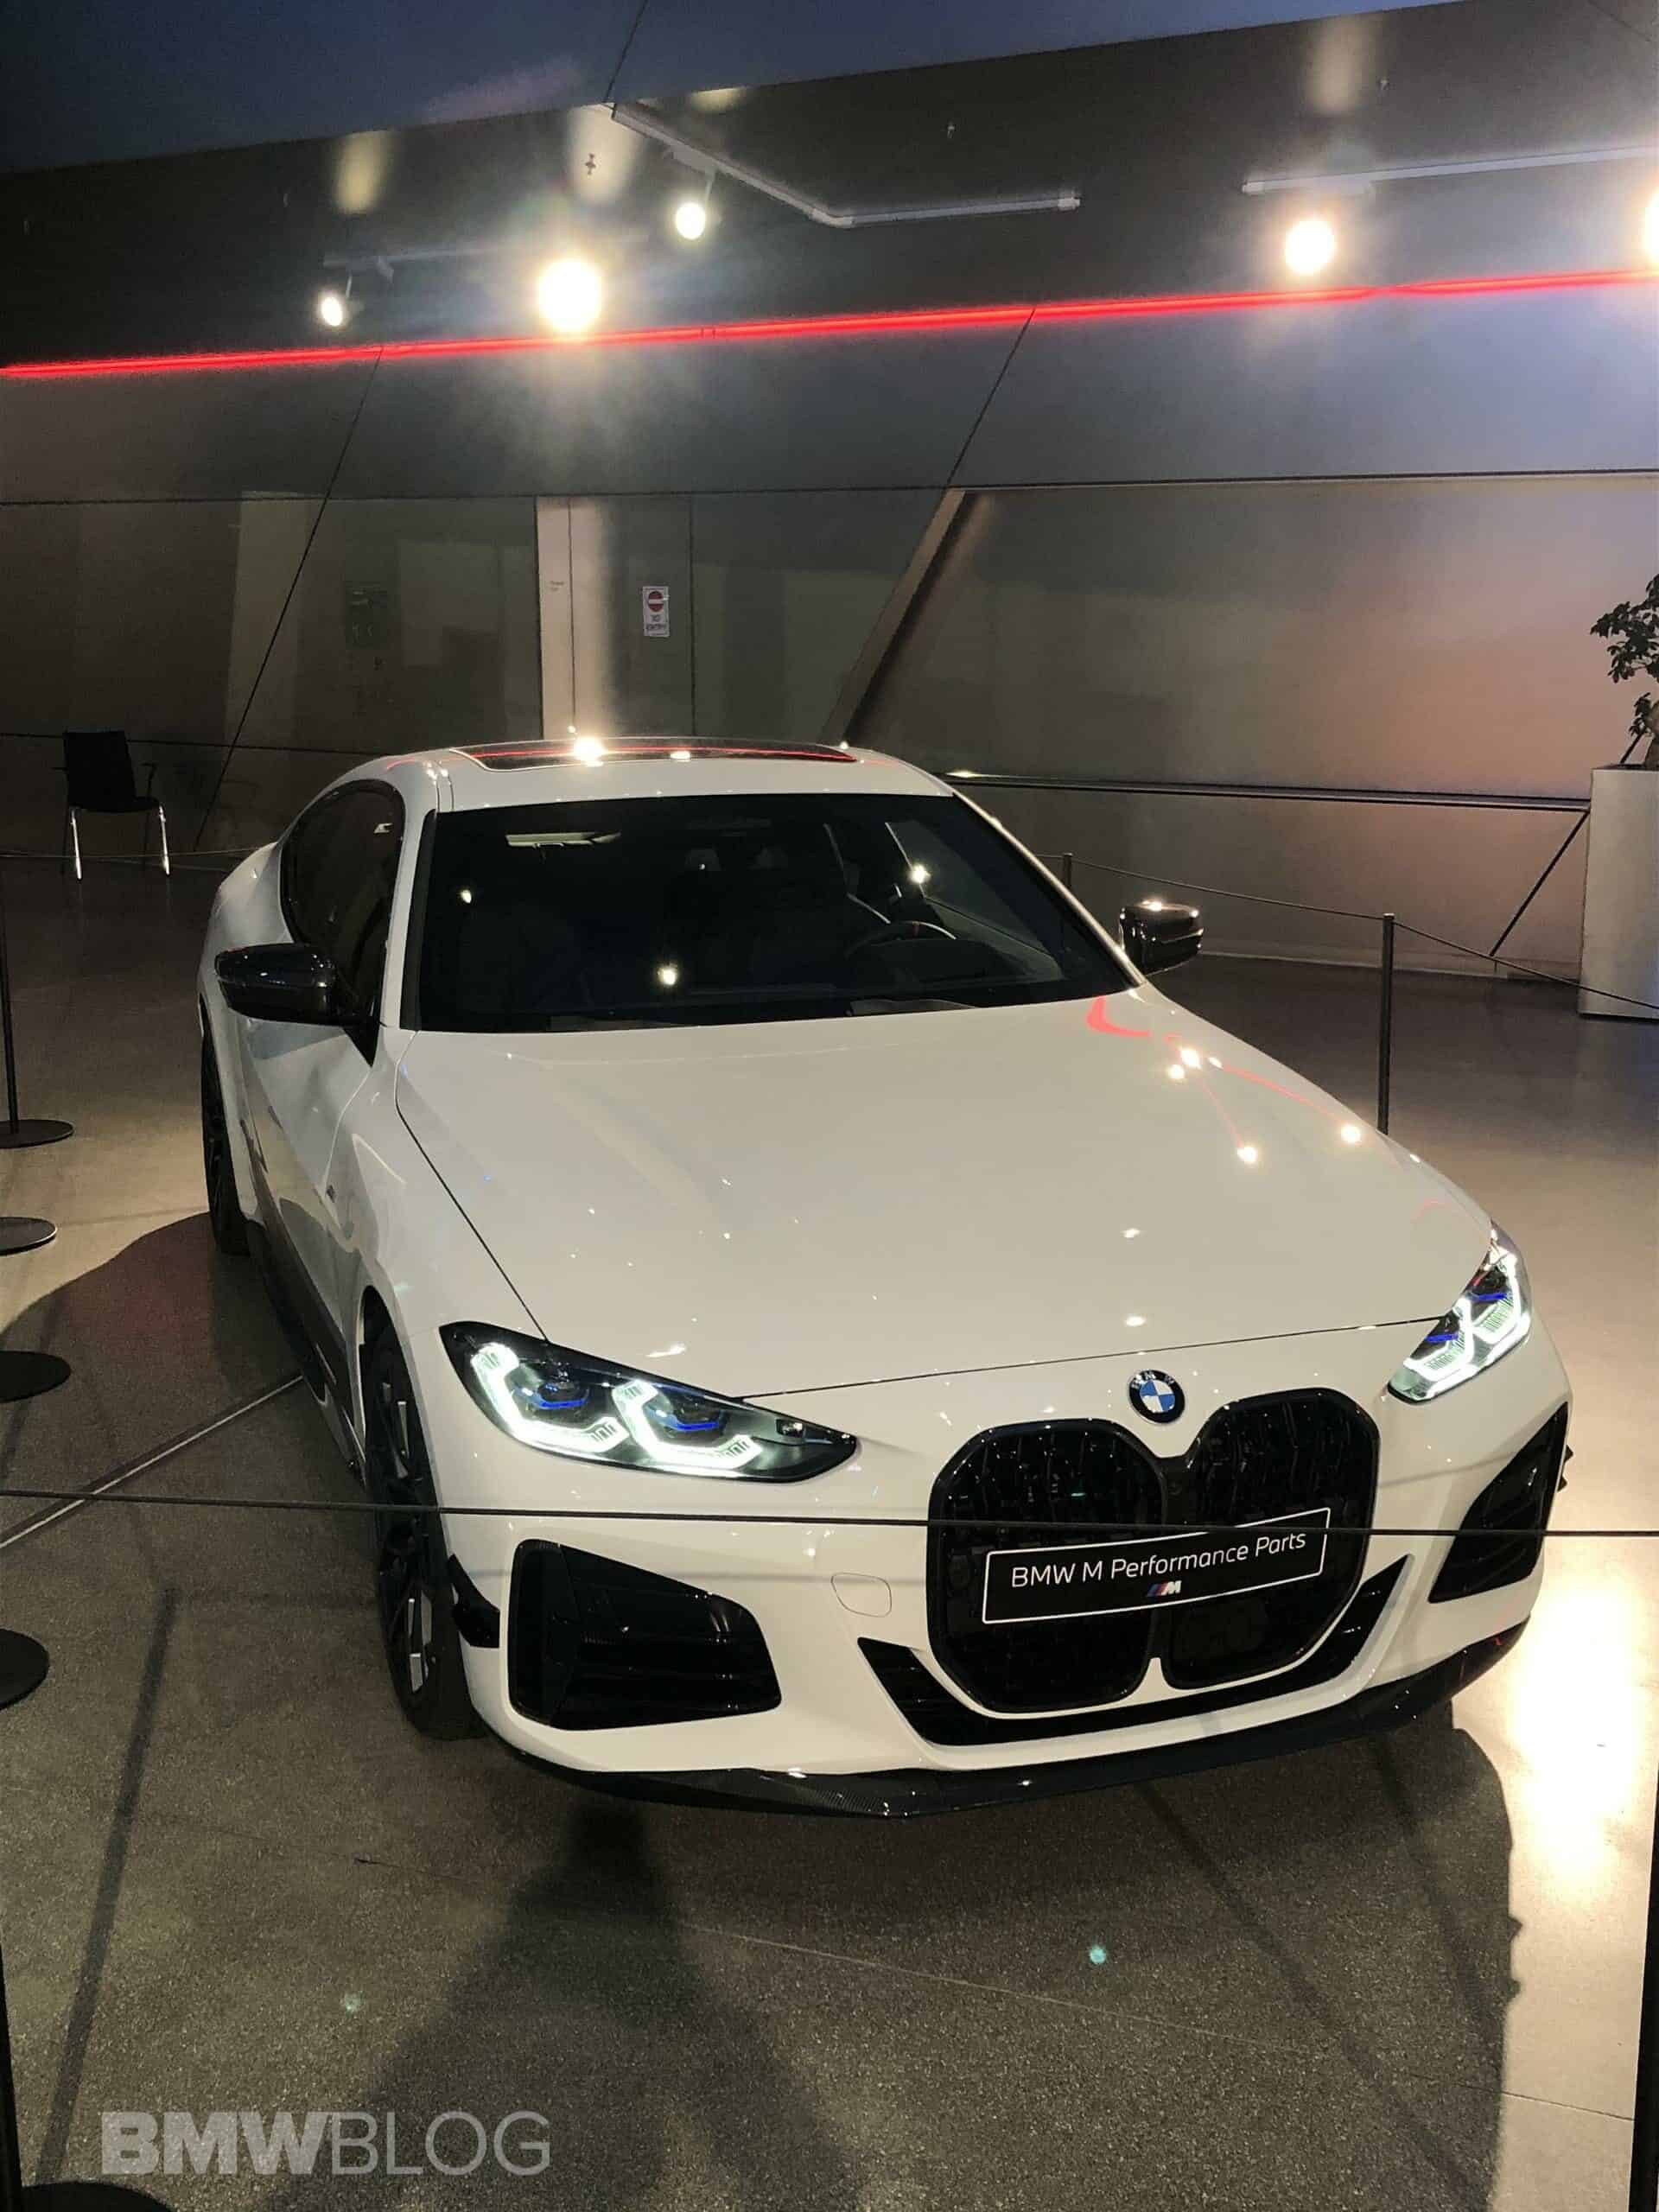 bmw m440i m performance parts 00 rotated